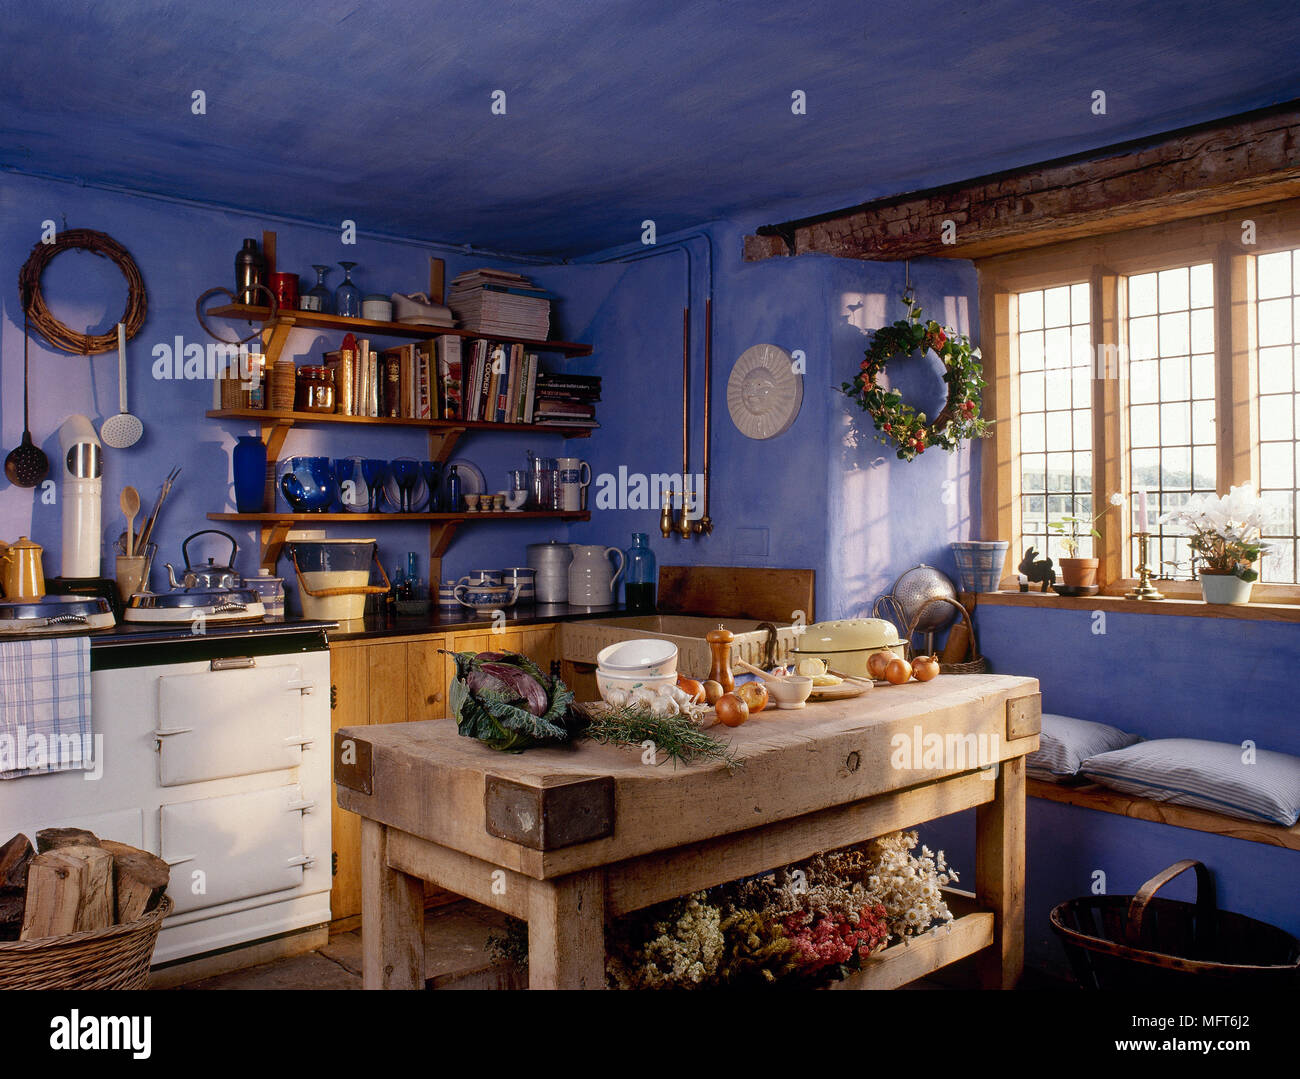 Blue country kitchen with butcher block worktable beamed bay window with window seat white oven and open shelving. & Blue country kitchen with butcher block worktable beamed bay window ...